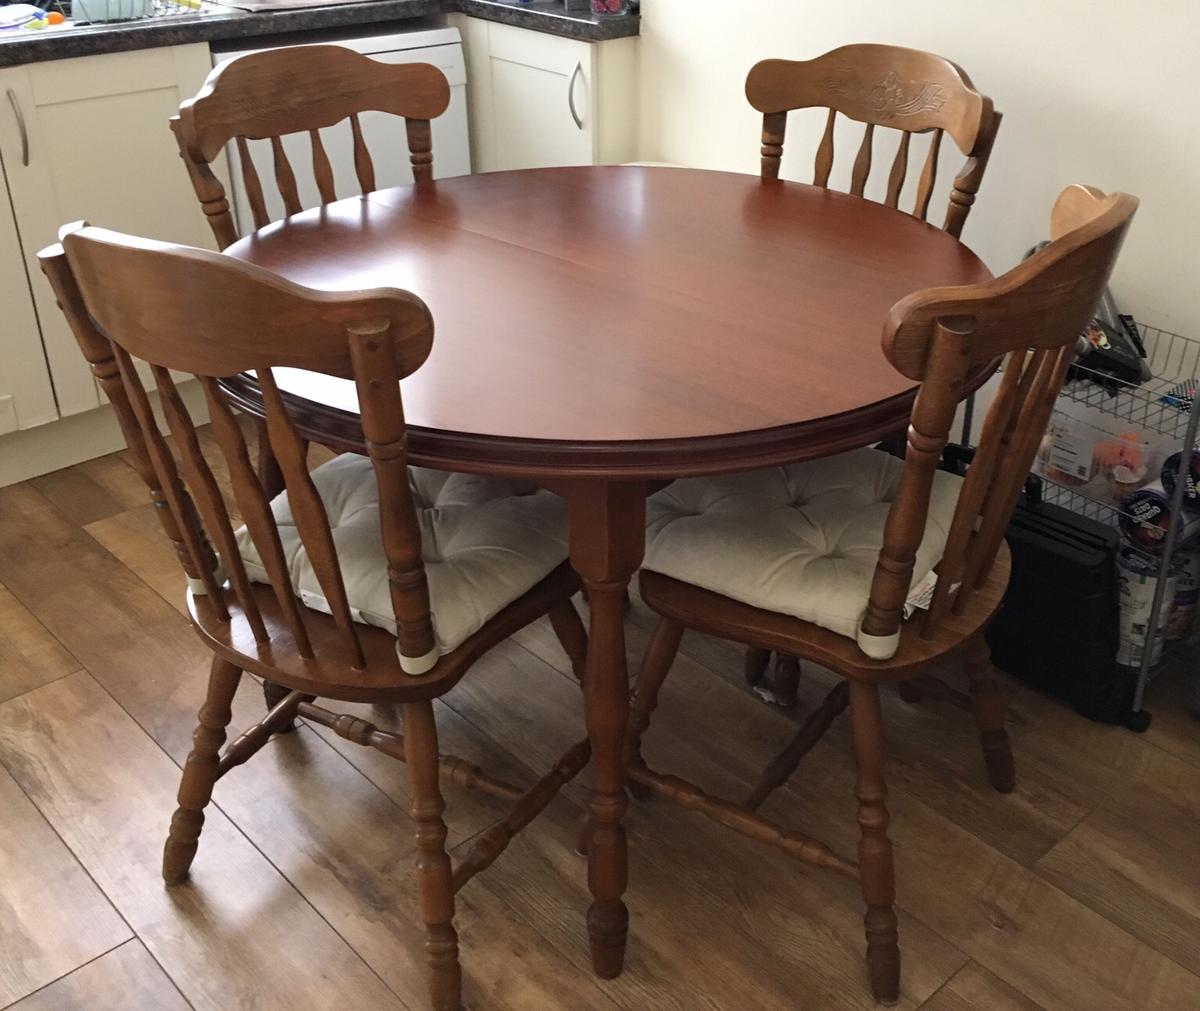 Outstanding Wooden Round Dining Table With 6 Chairs In L36 Knowsley For Creativecarmelina Interior Chair Design Creativecarmelinacom